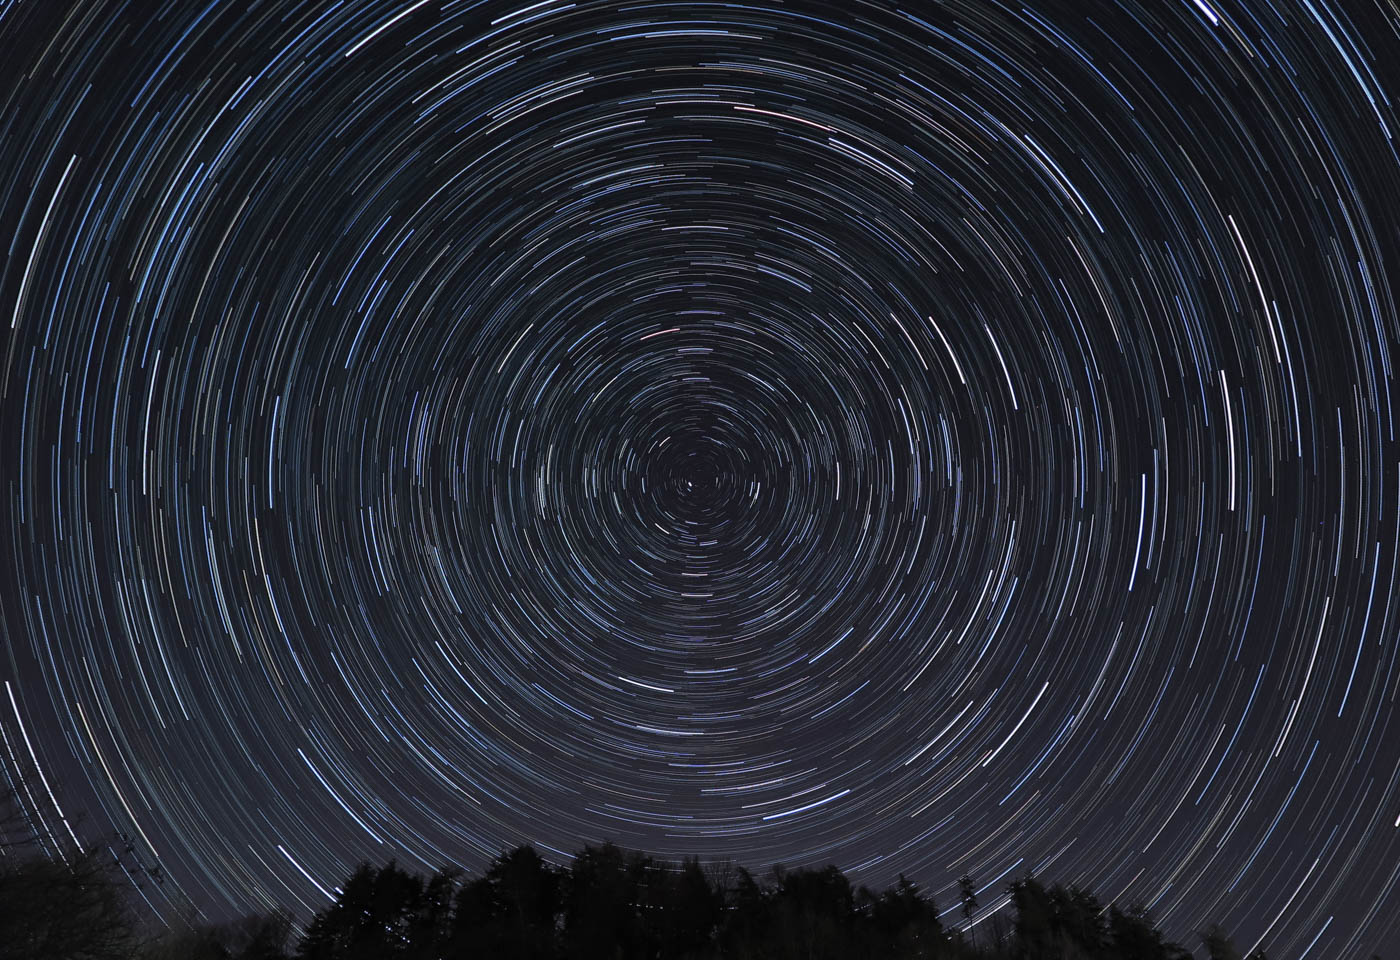 Star trail, taken with the Canon PowerShot G1X Mark II camera